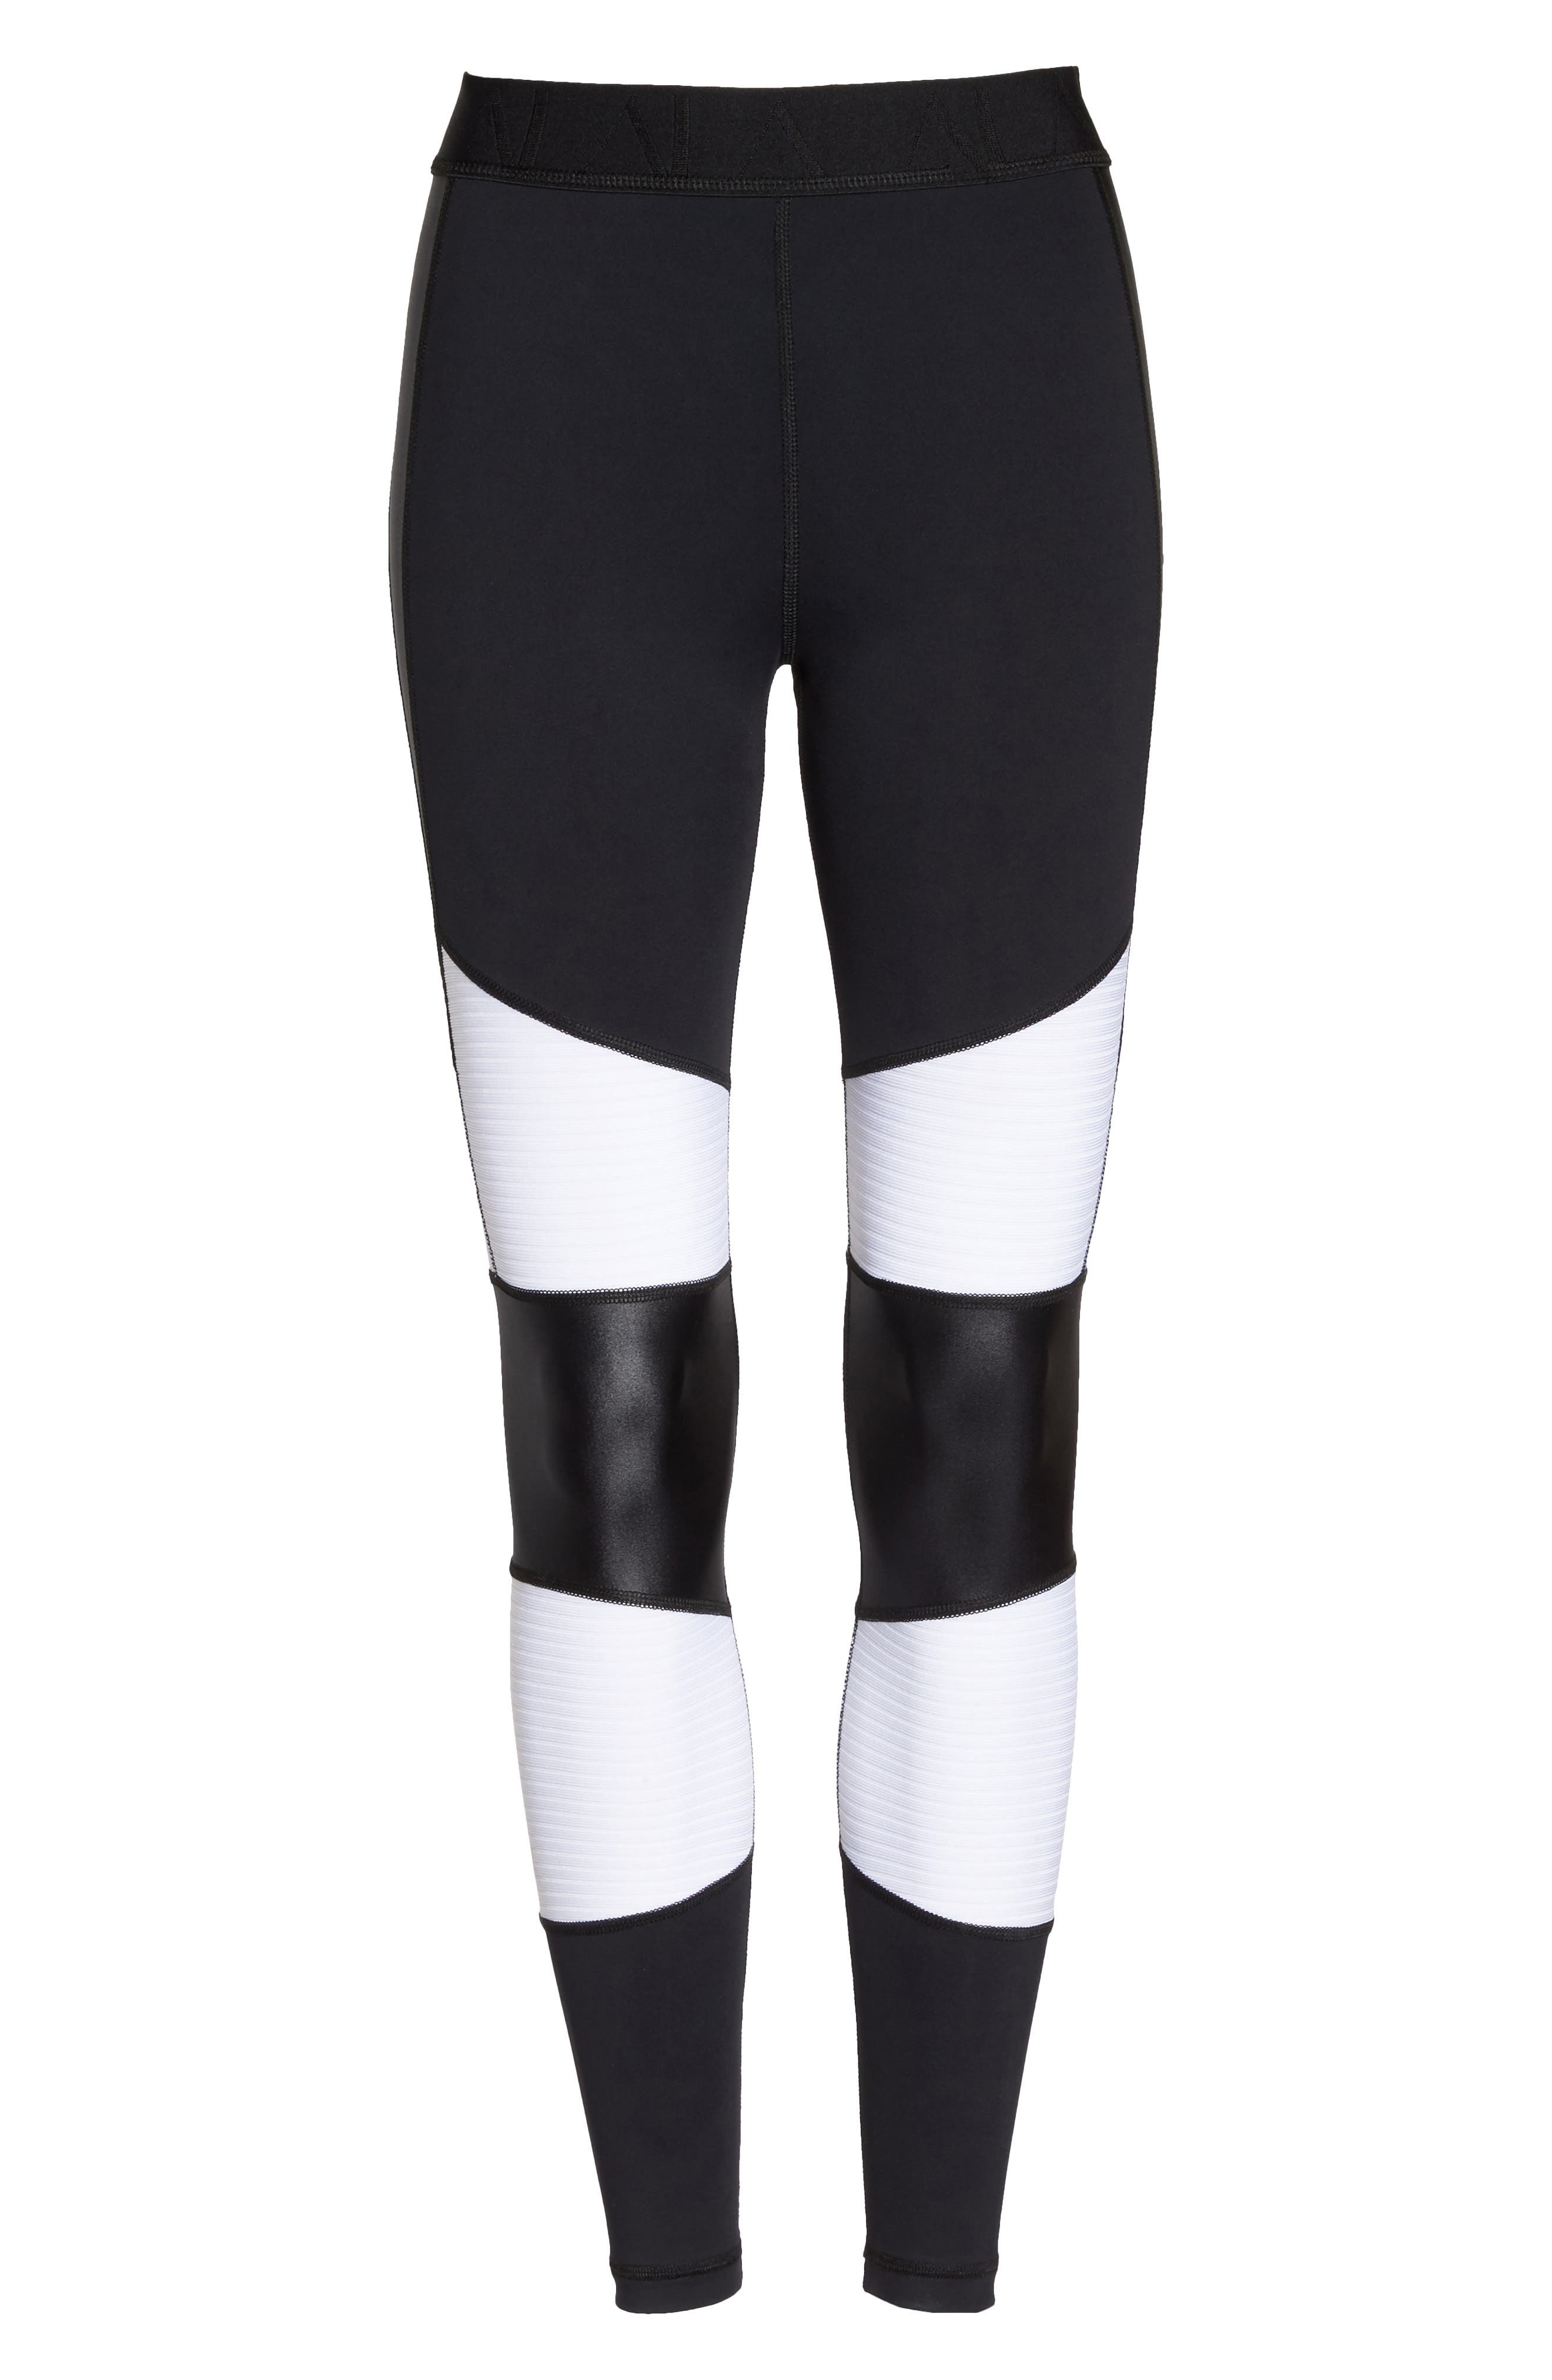 Harley Tights,                             Alternate thumbnail 7, color,                             White